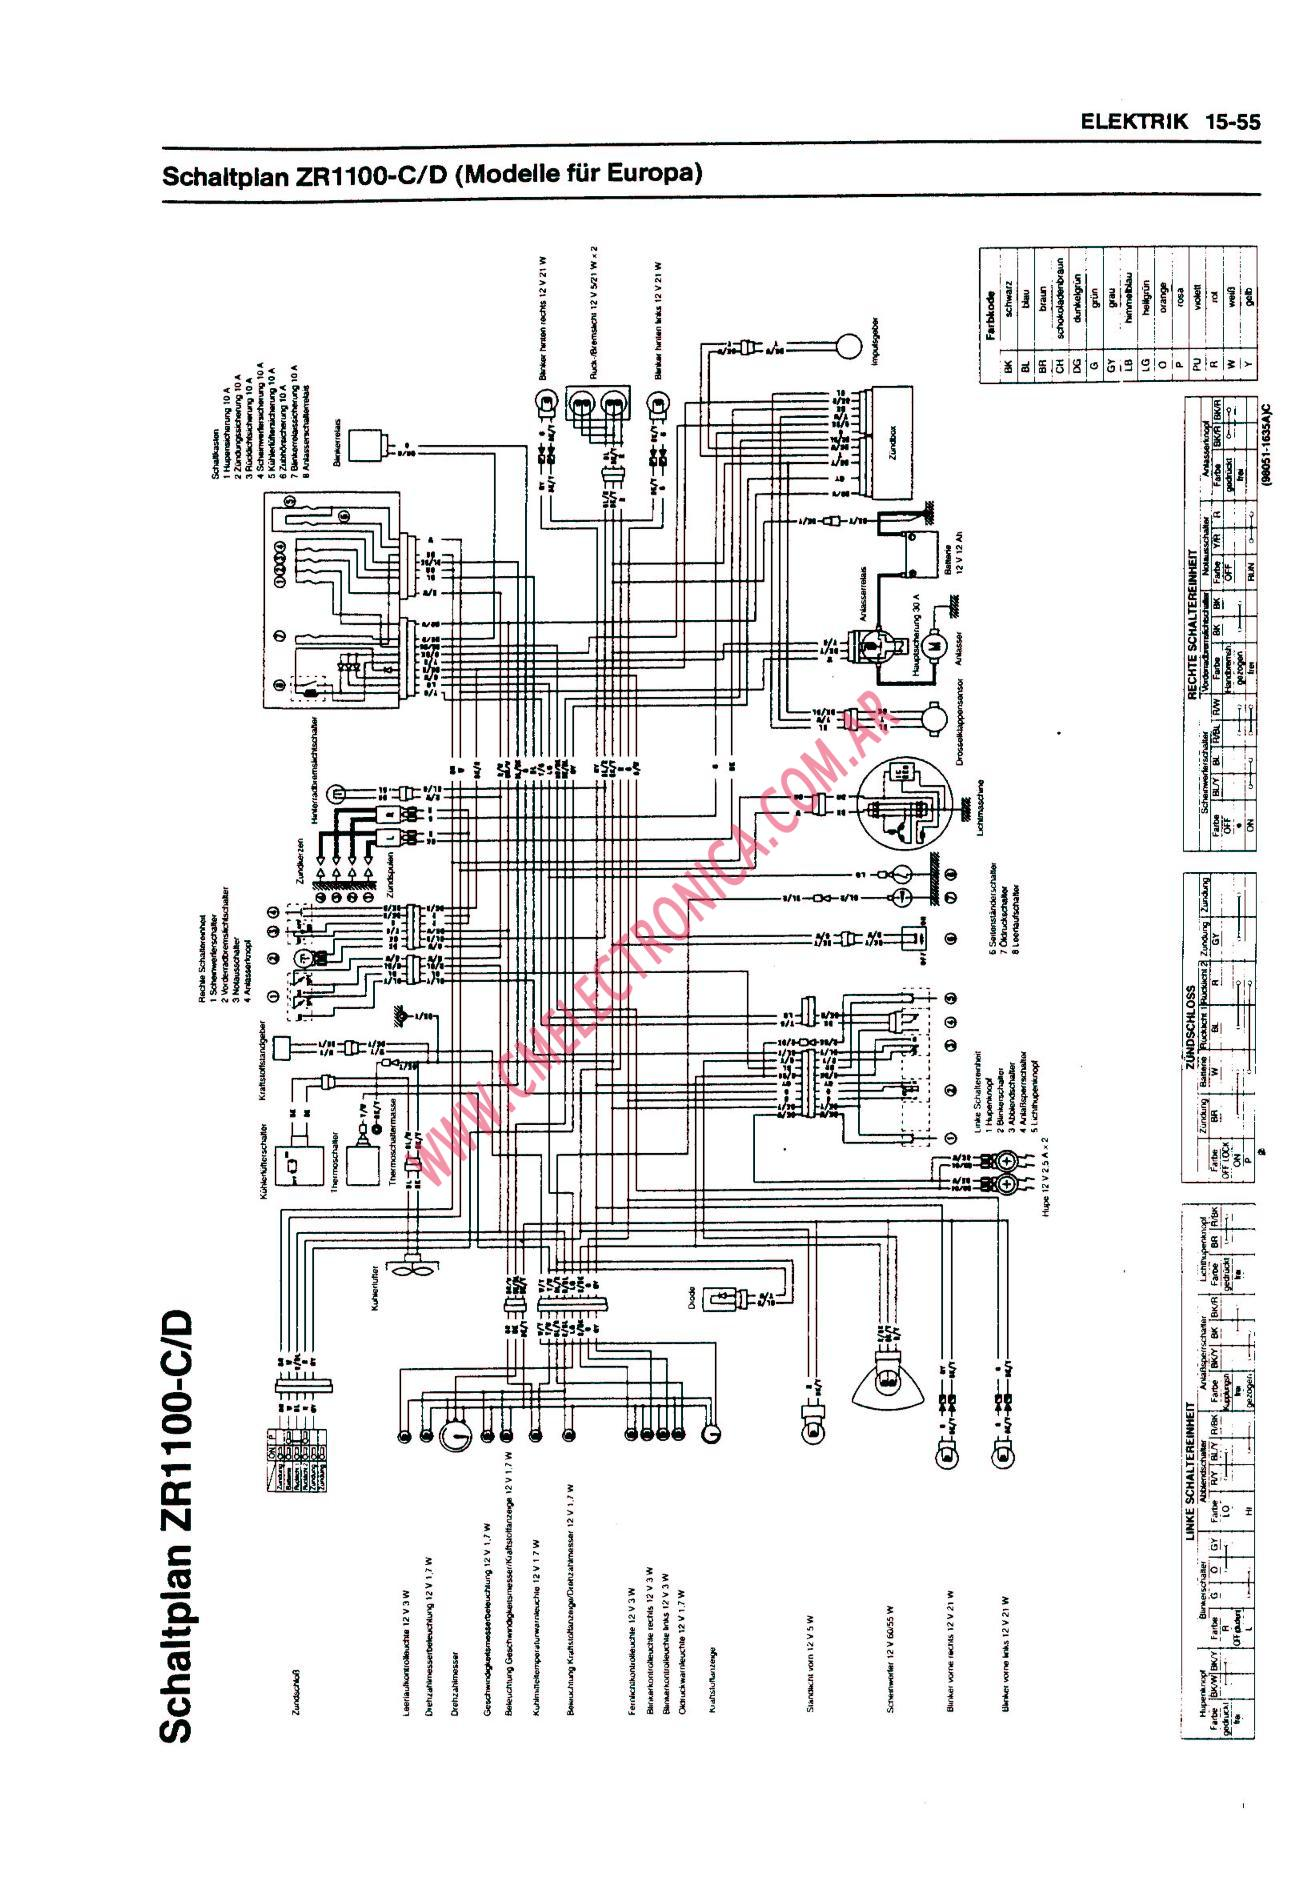 kawasaki zrx1100 honda shadow 750 wiring schematic dolgular com 1983 honda shadow 750 wiring diagram at suagrazia.org